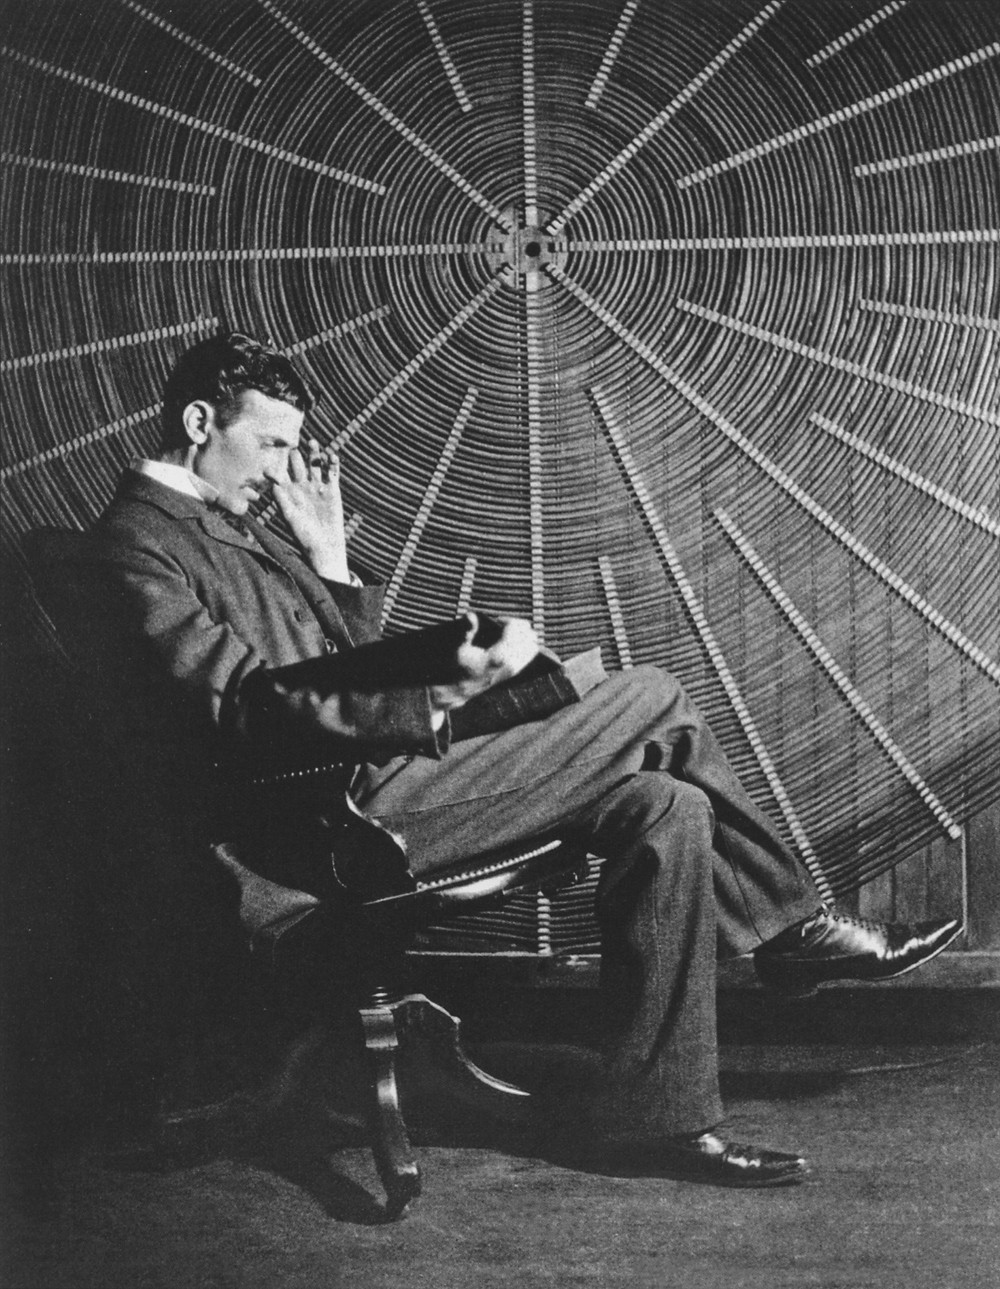 Nikola Tesla left behind quite a few mysterious notebooks and papers.